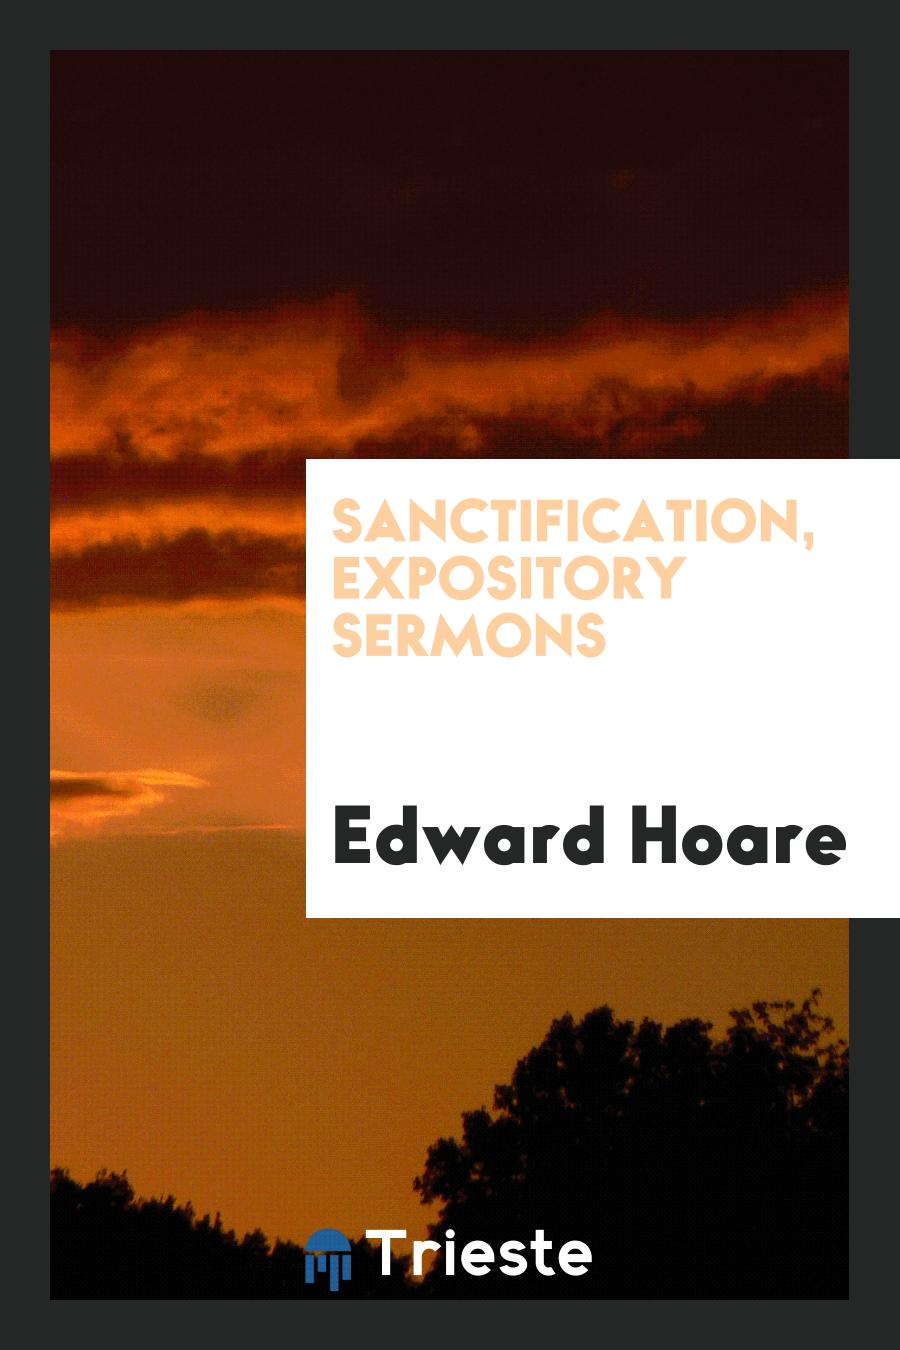 Sanctification, Expository Sermons